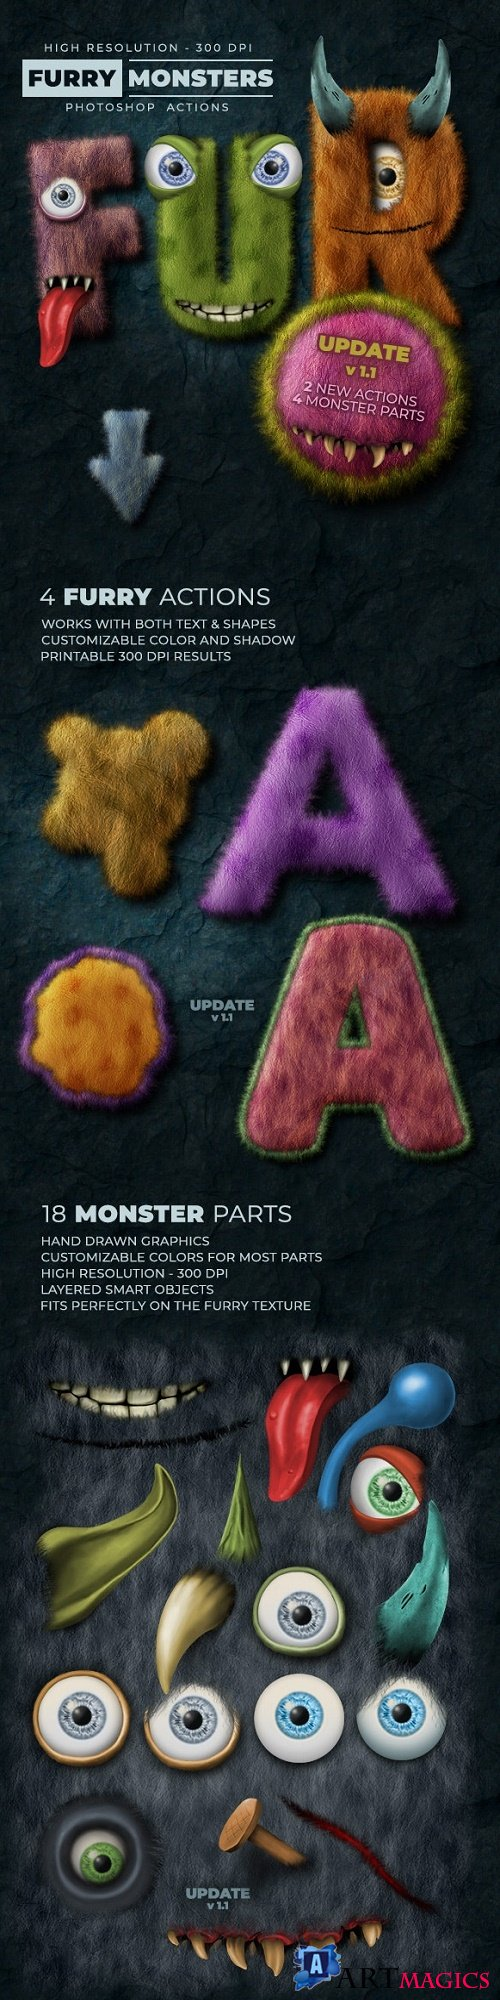 Furry Monster Actions - 300 DPI - 24518004